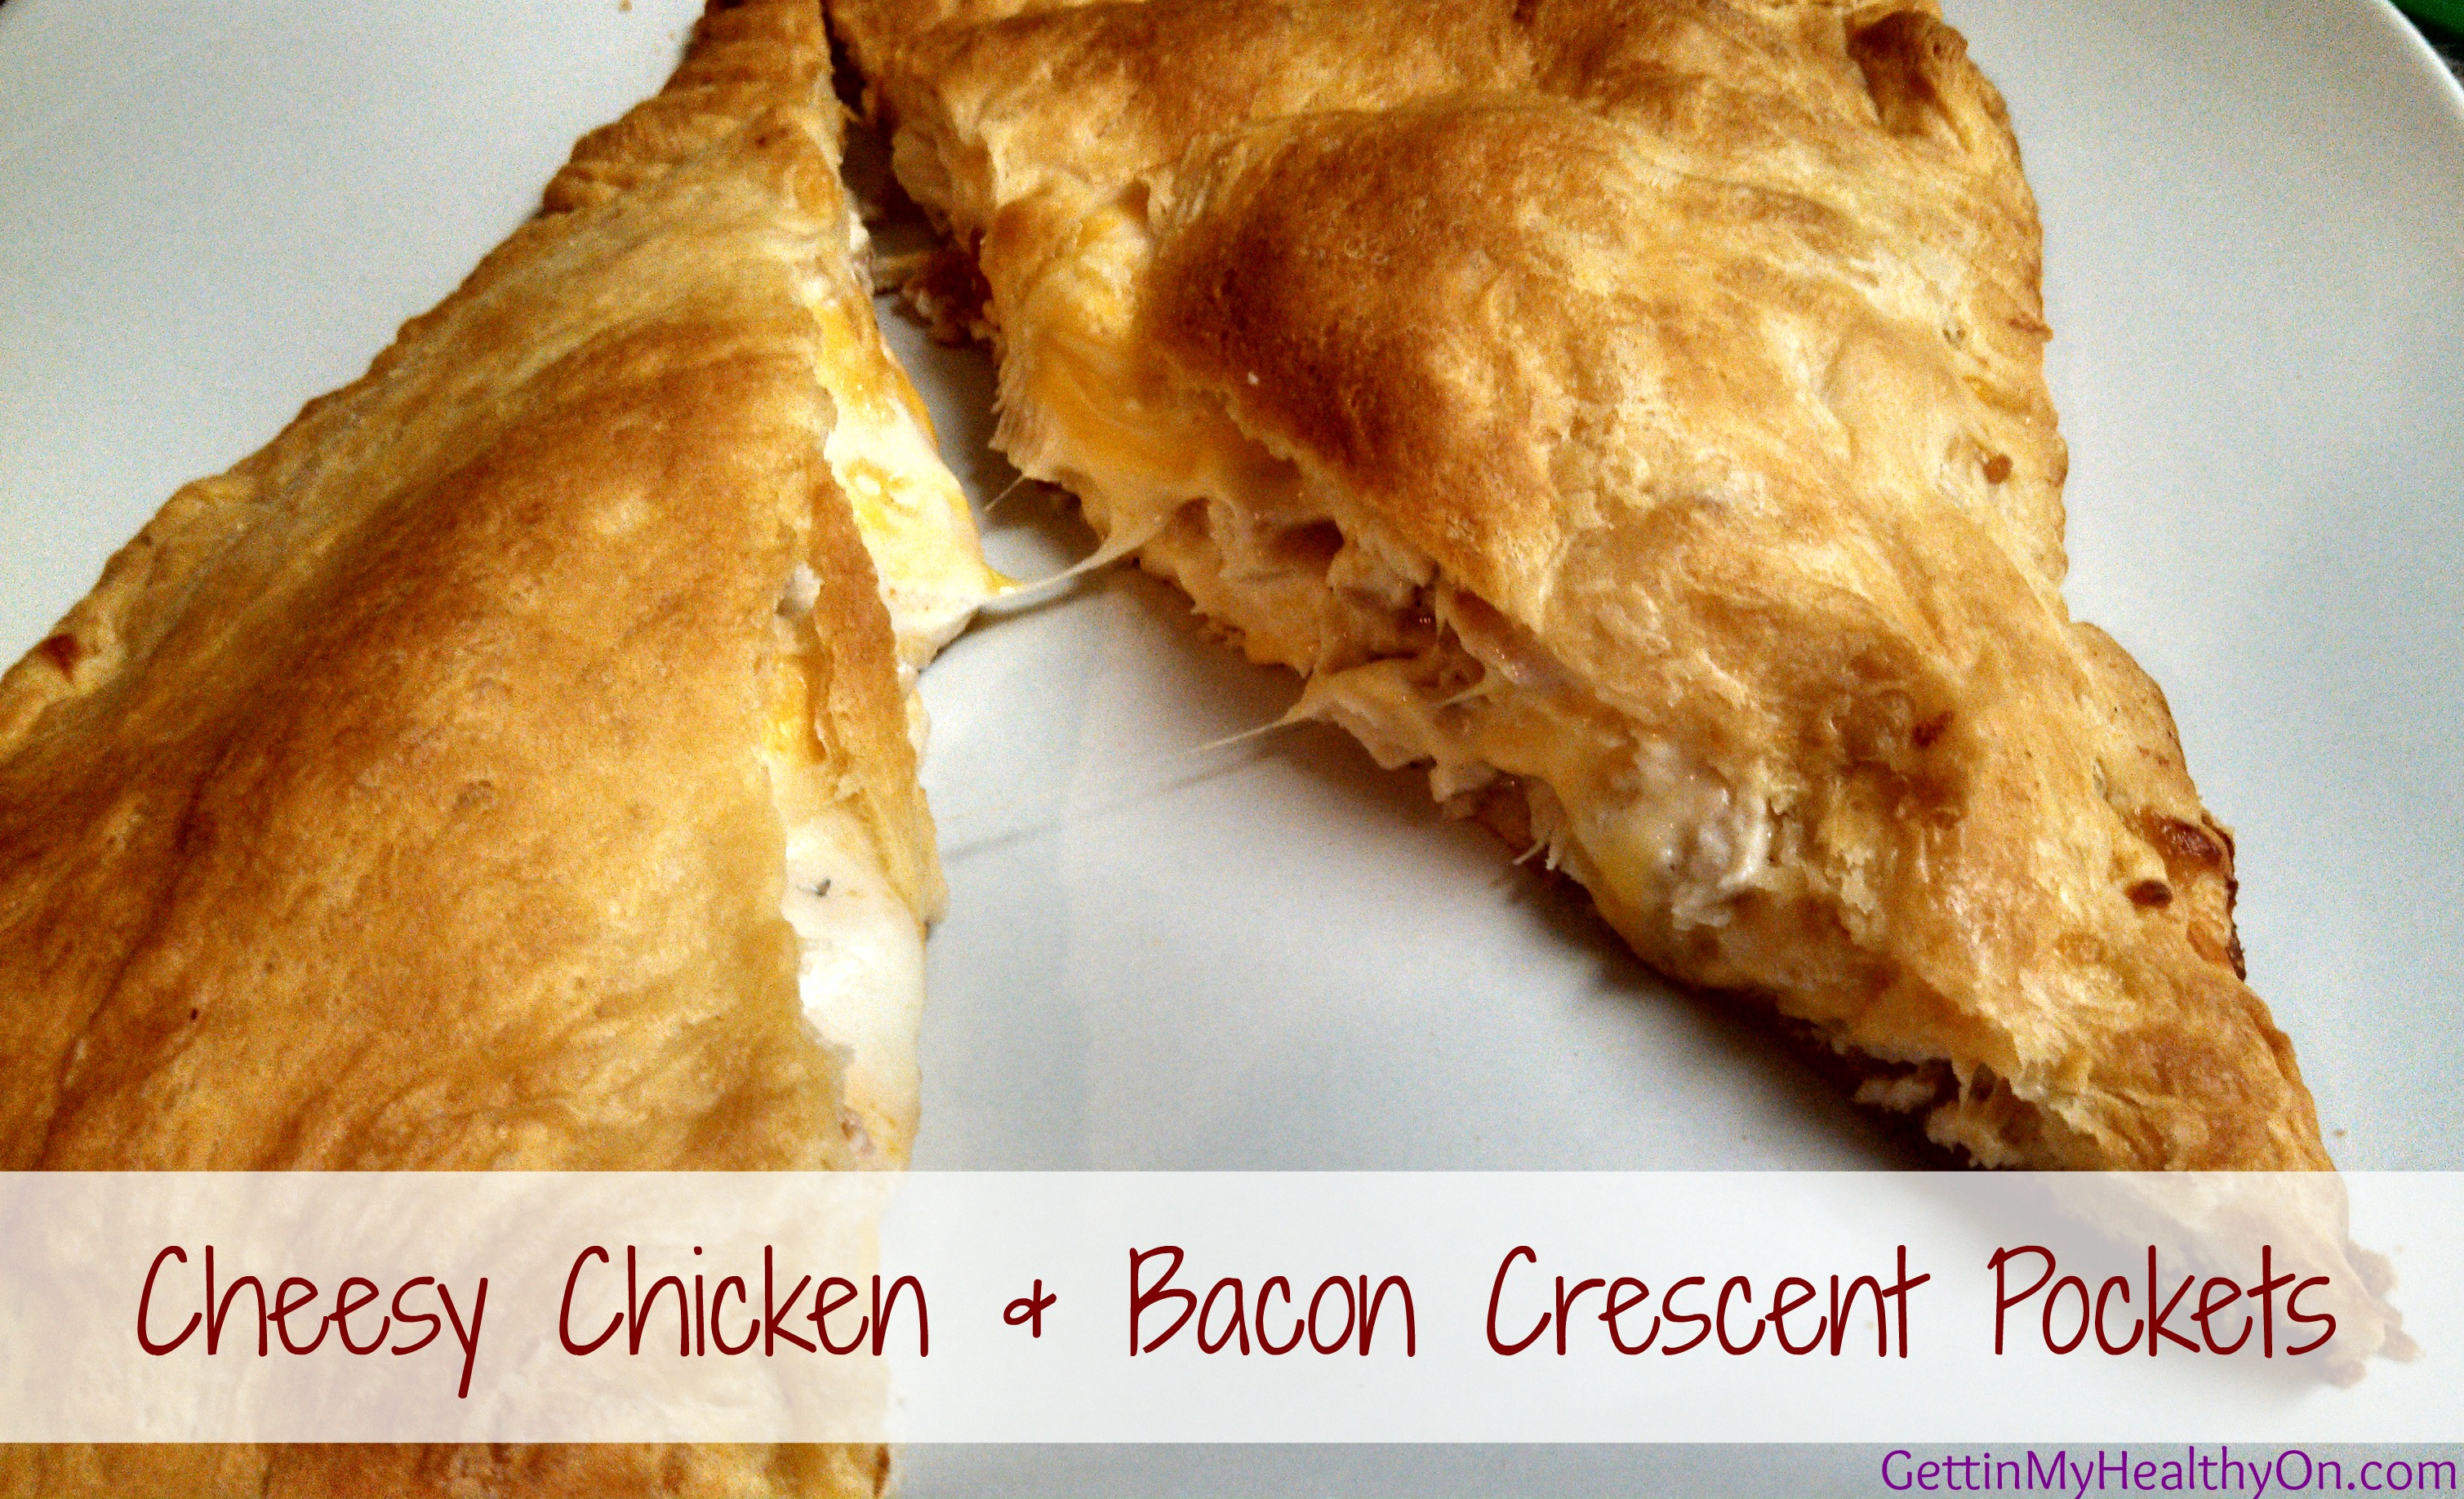 Cheesy Chicken & Bacon Crescent Pockets